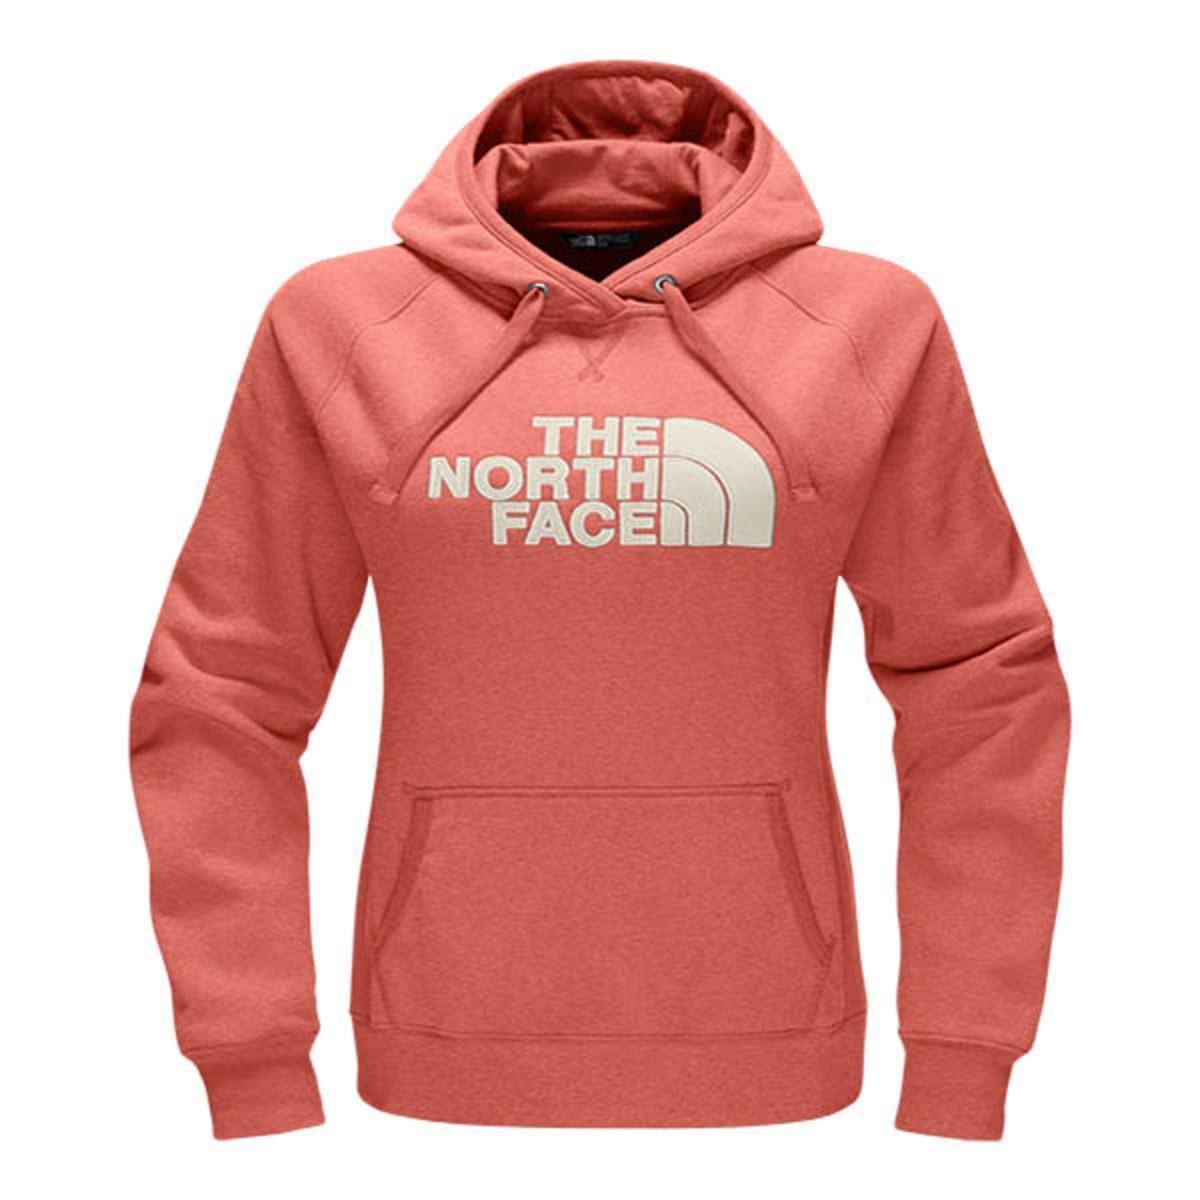 1643f6bb1 The North Face Women's Avalon Half Dome Pull-Over Hoodie – Fire ...